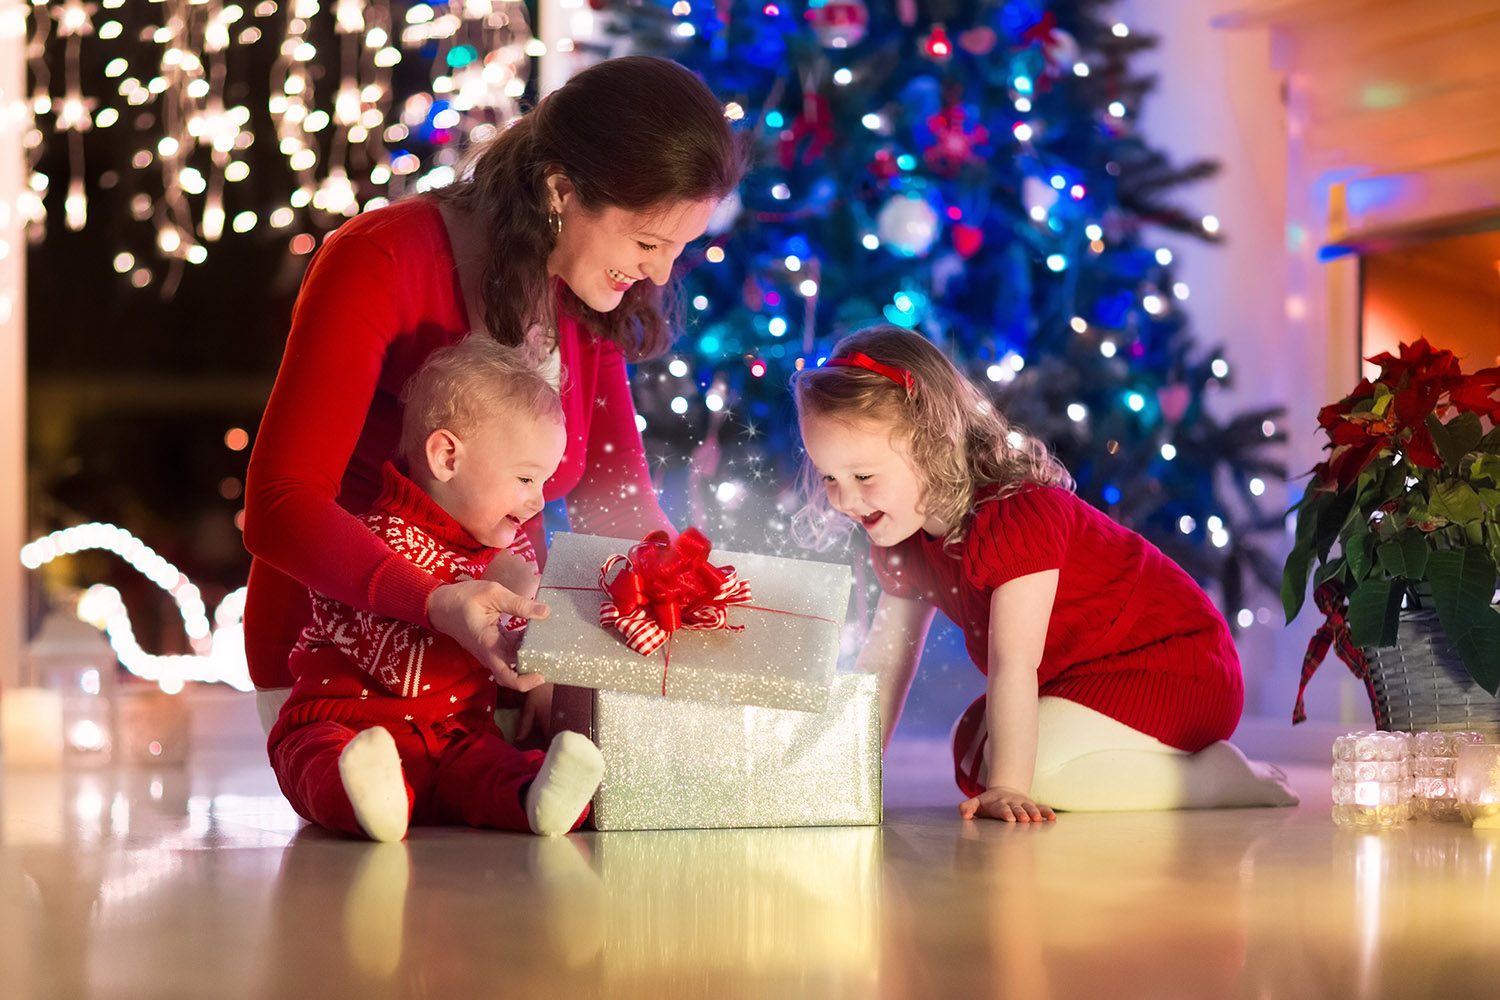 christmas eve parent mother children presents tree lights twinkling